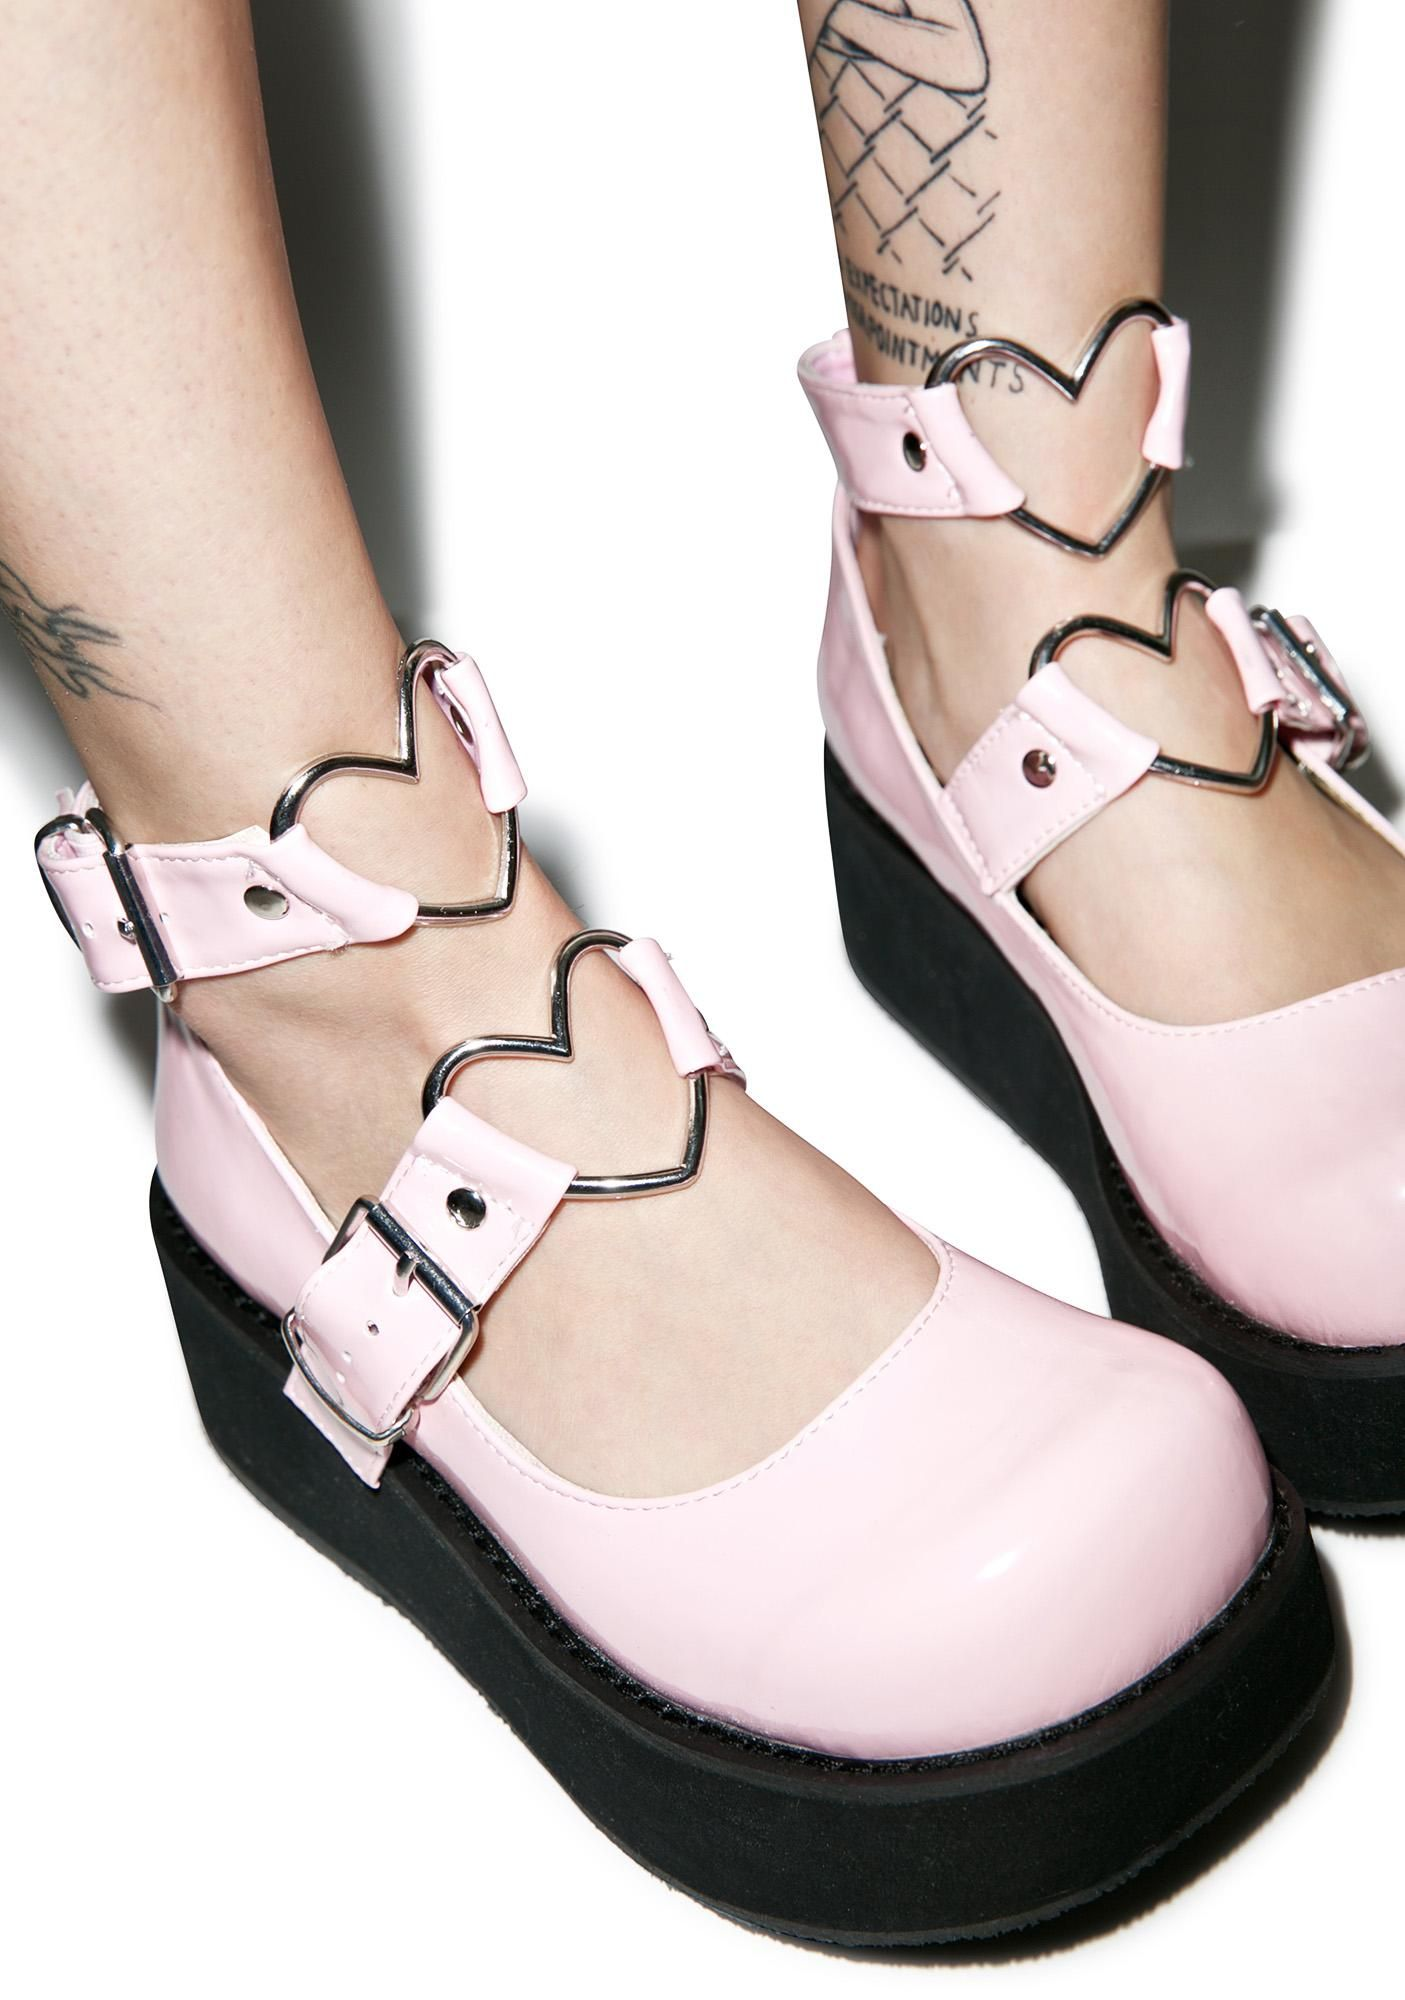 Modern Stacie Doll Off Light Pink Platform Mary Jane Style Shoes NEW